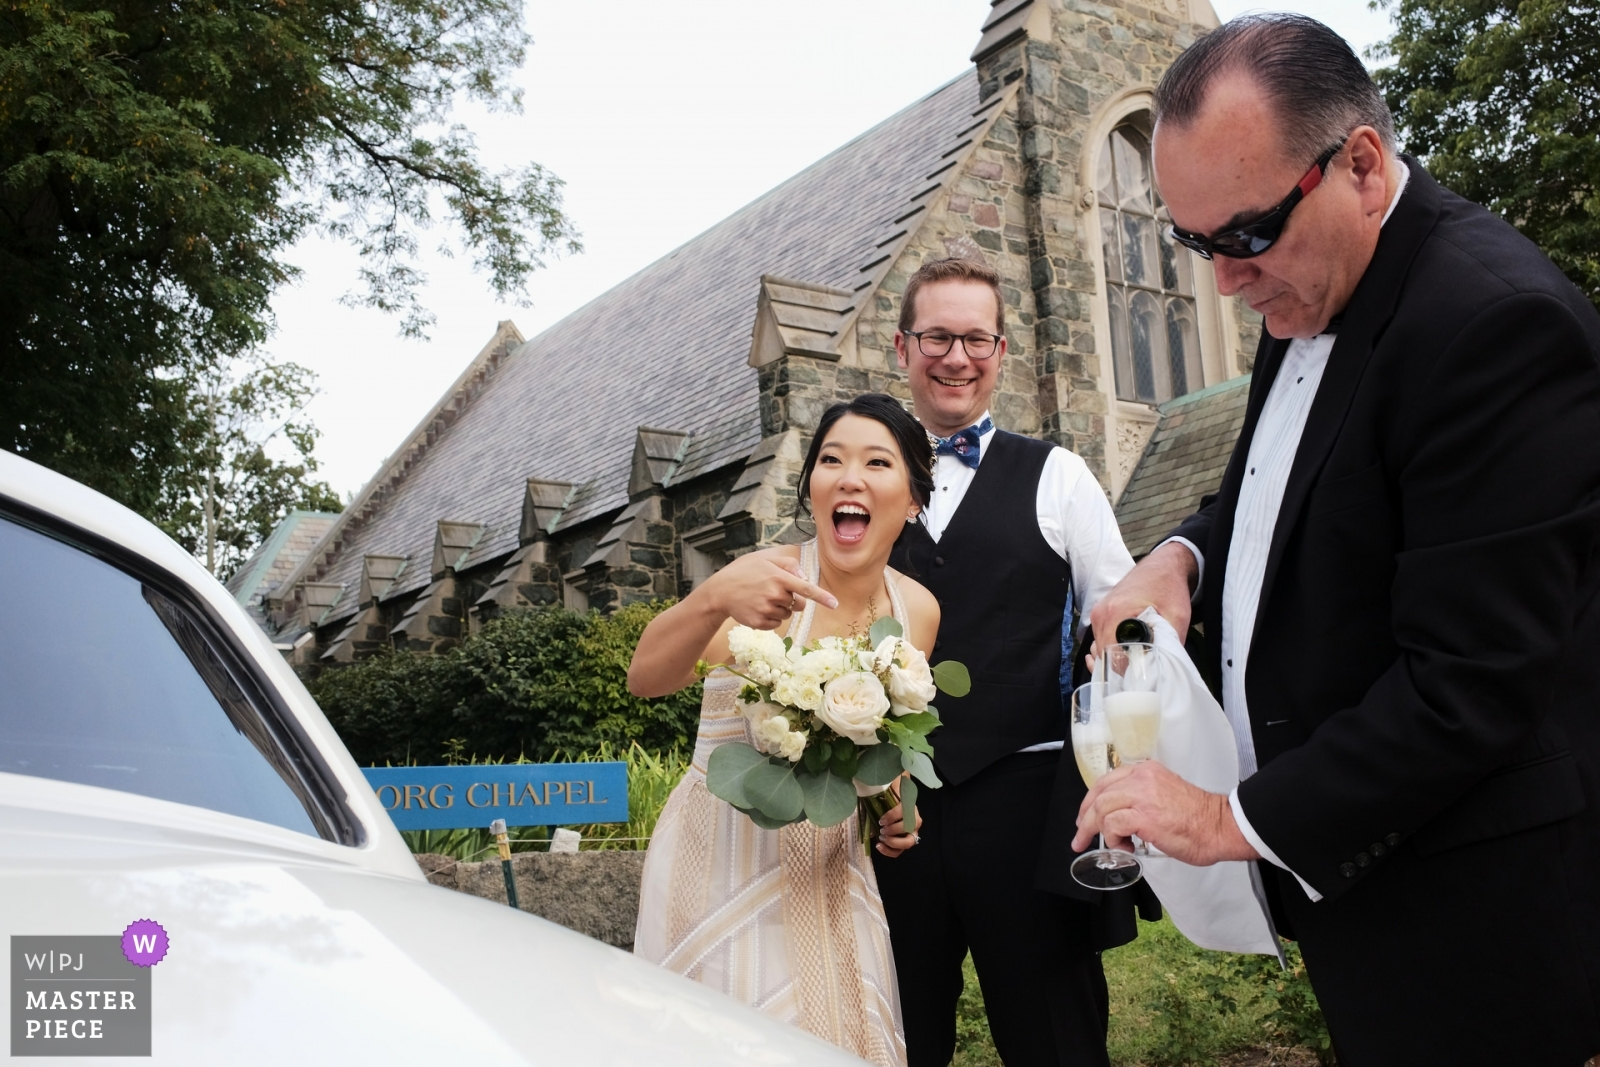 Bride and Groom being served champagne from limo driver - Boston, Massachusetts Wedding Photography -  | Swedenborg Chapel Cambridge, MA